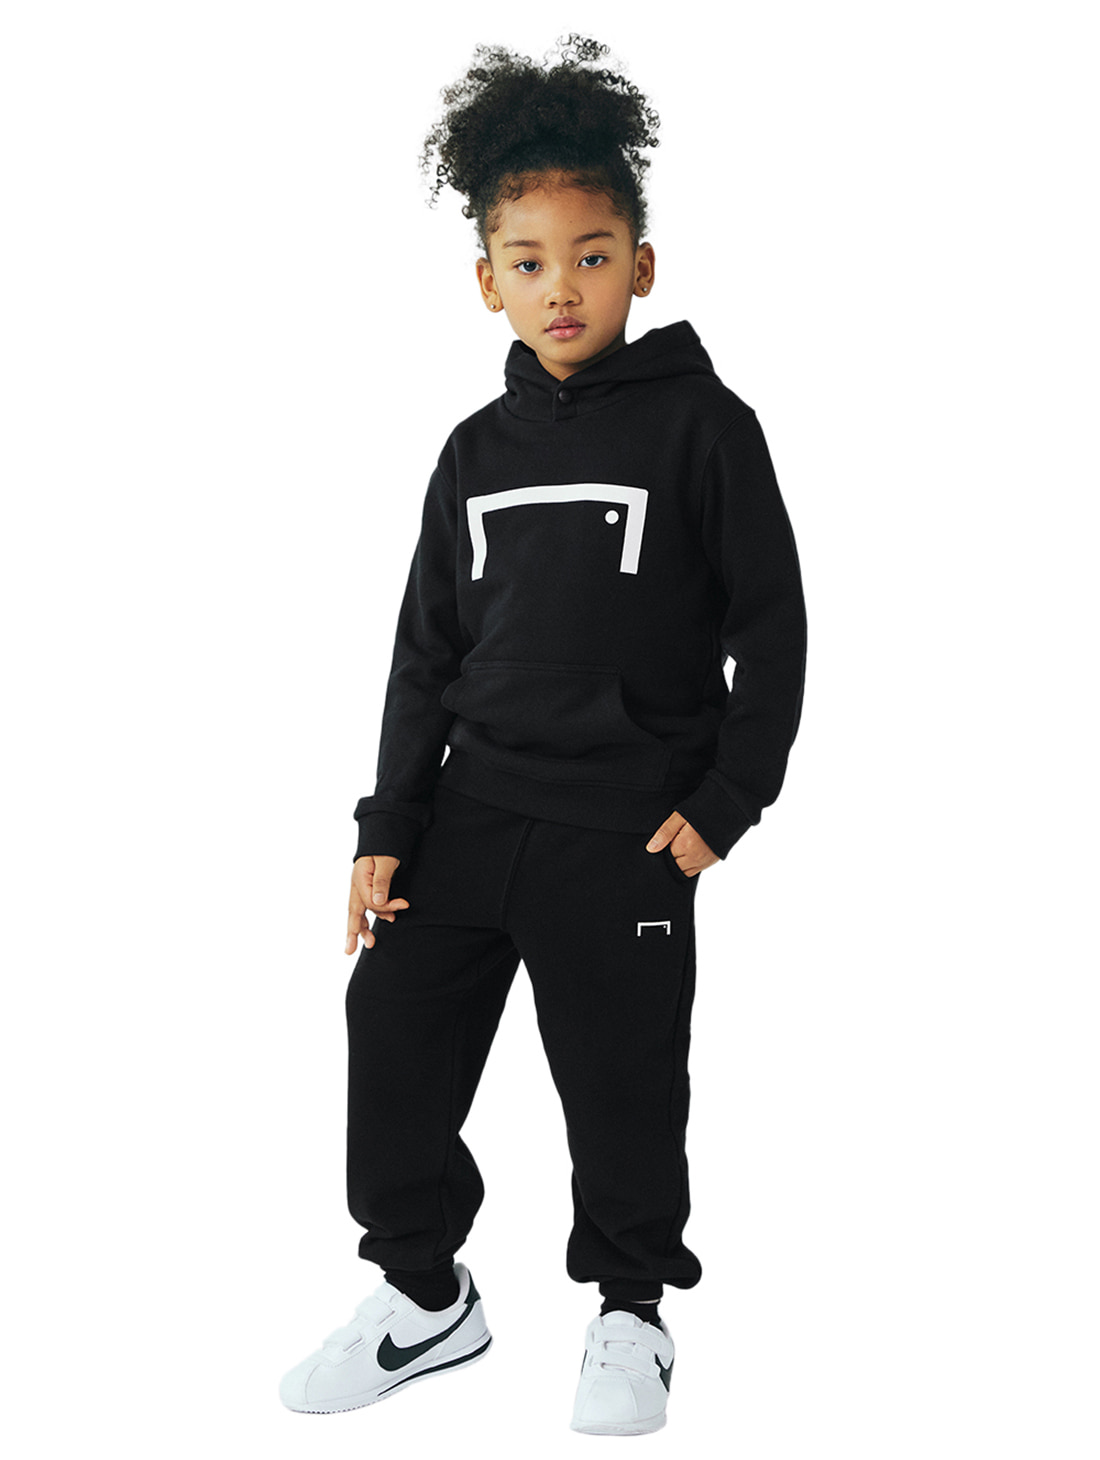 GOALSTUDIO [10% OFF] (KIDS) STRIKER HOODIE & PANTS SET